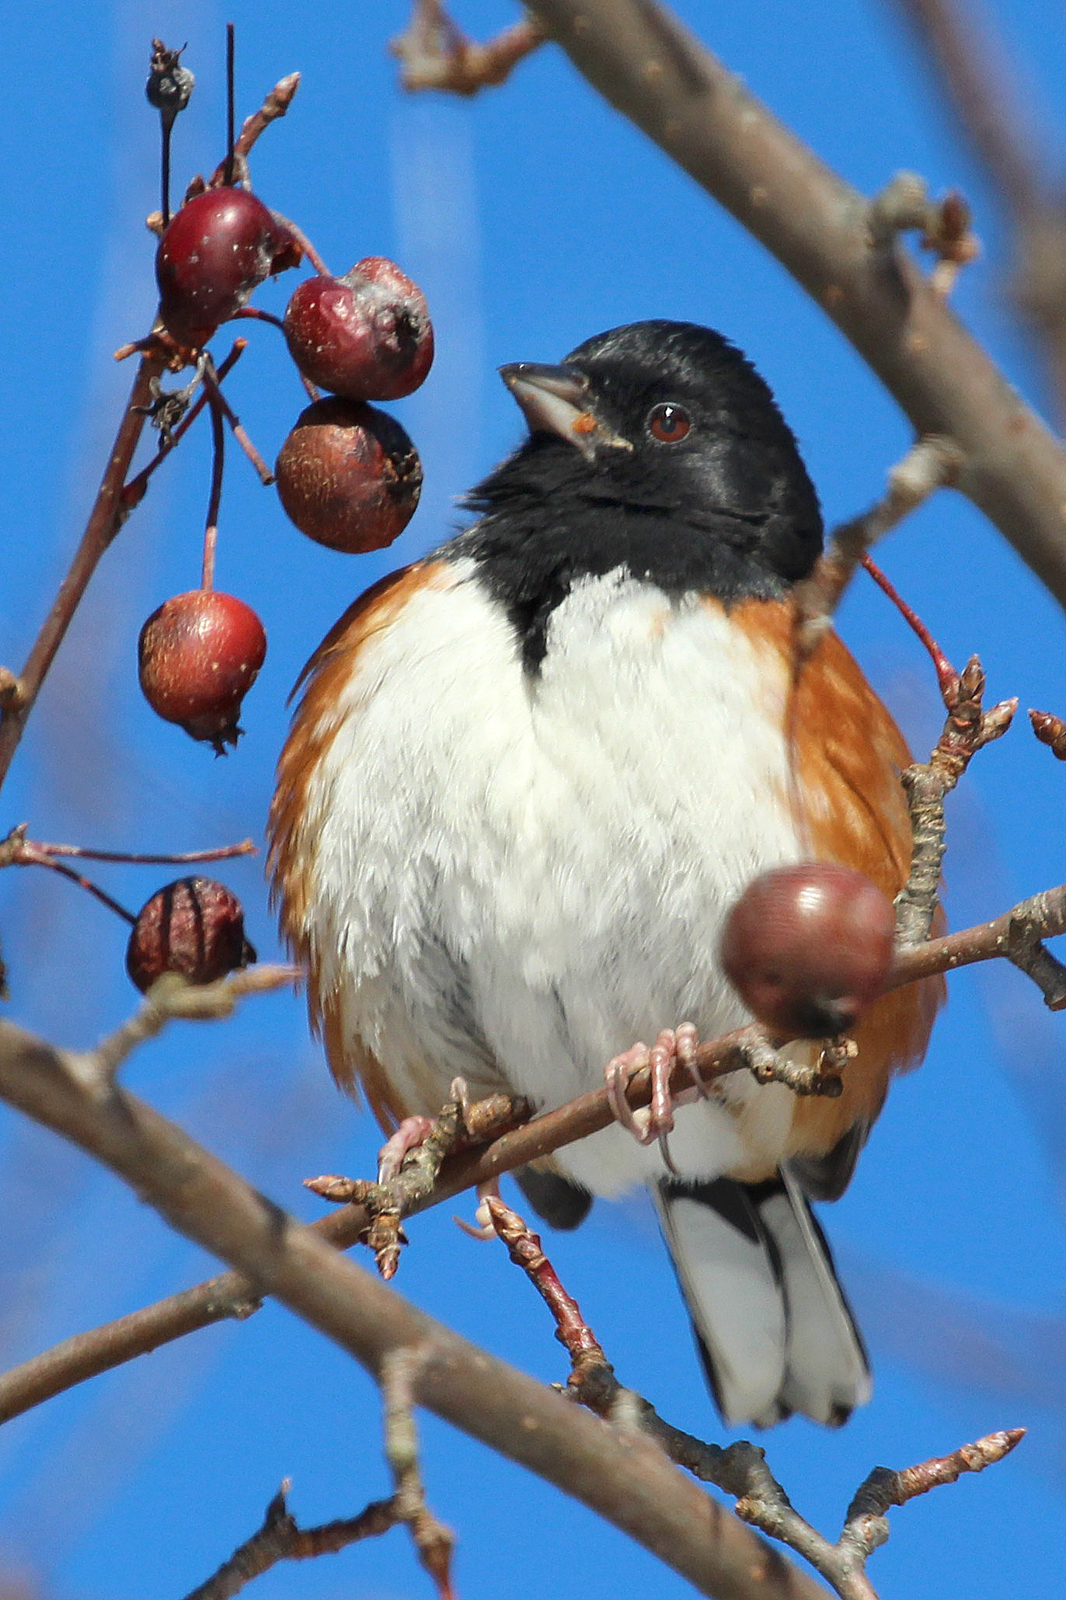 Photo by Chris Bosak An Eastern Towhee eats a crab apple during a cold winter day at Weed Beach in Darien, CT., Jan. 2014.